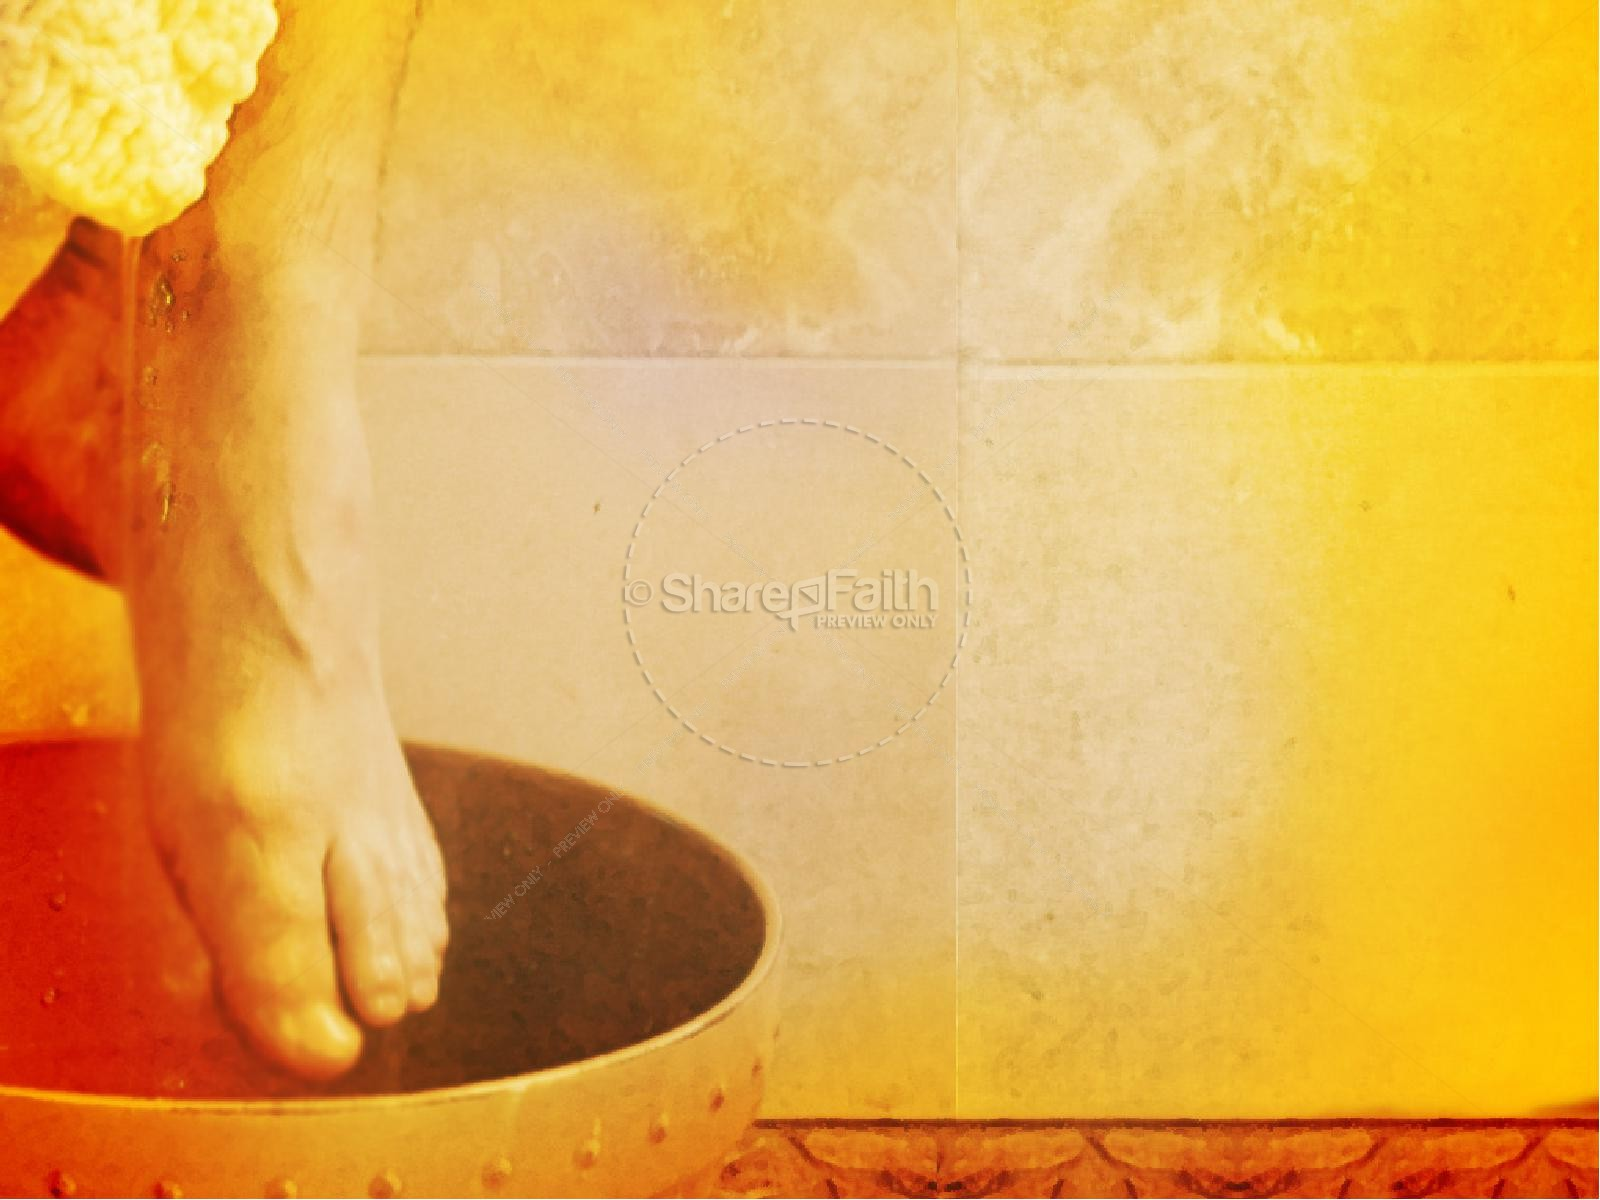 Jesus the Servant Washes Feet